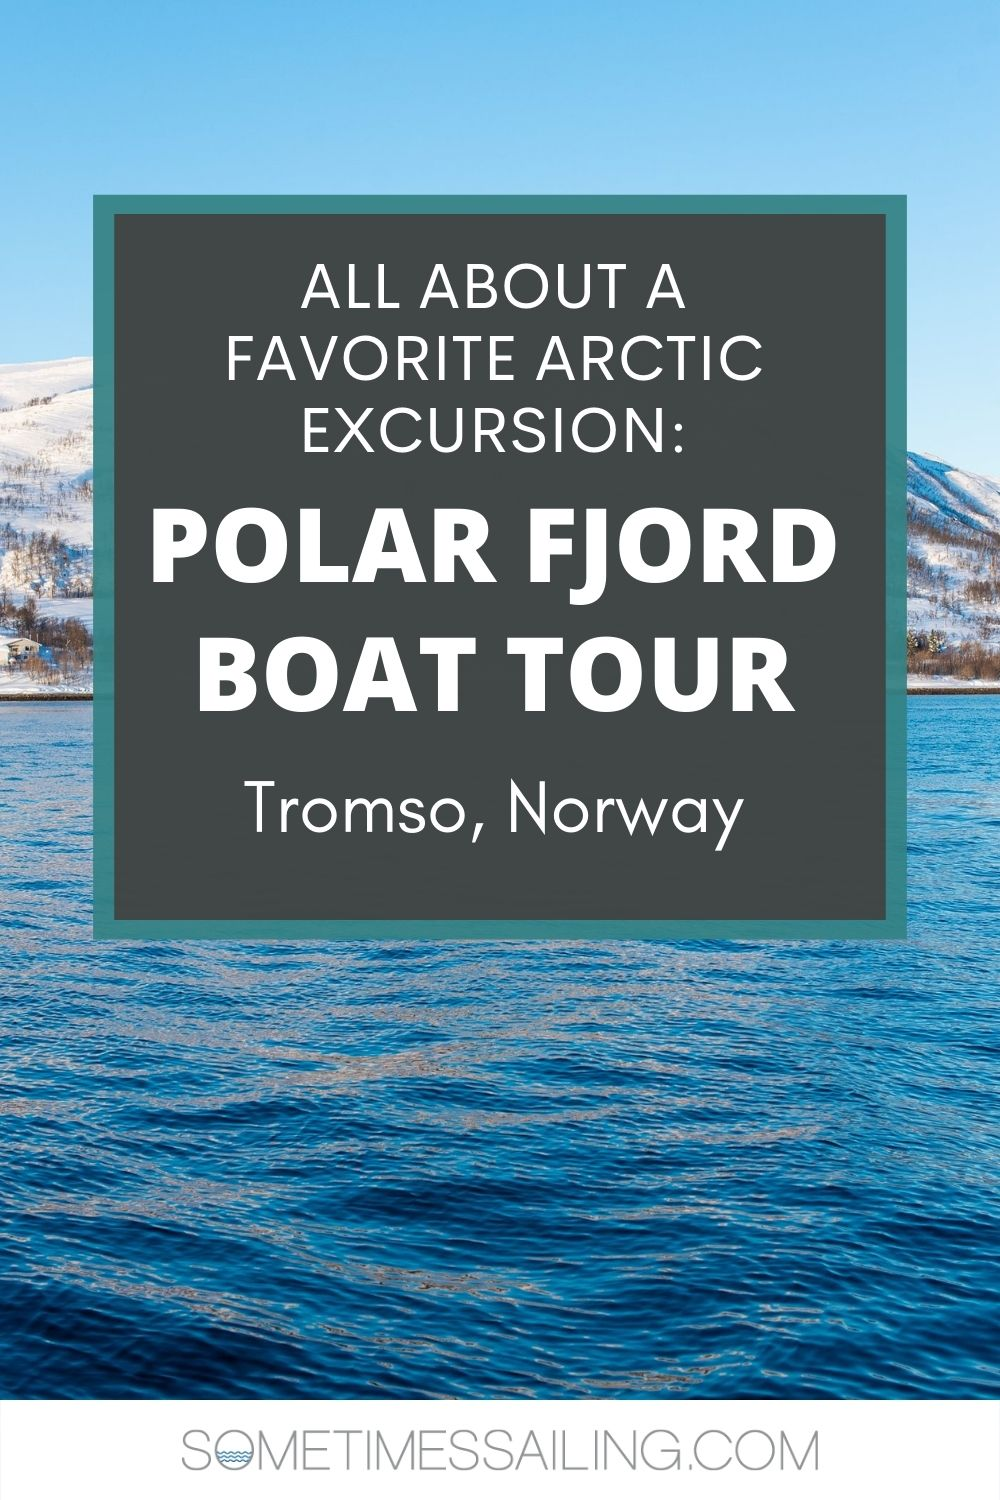 Tromso boat tour graphic for Pinterest.